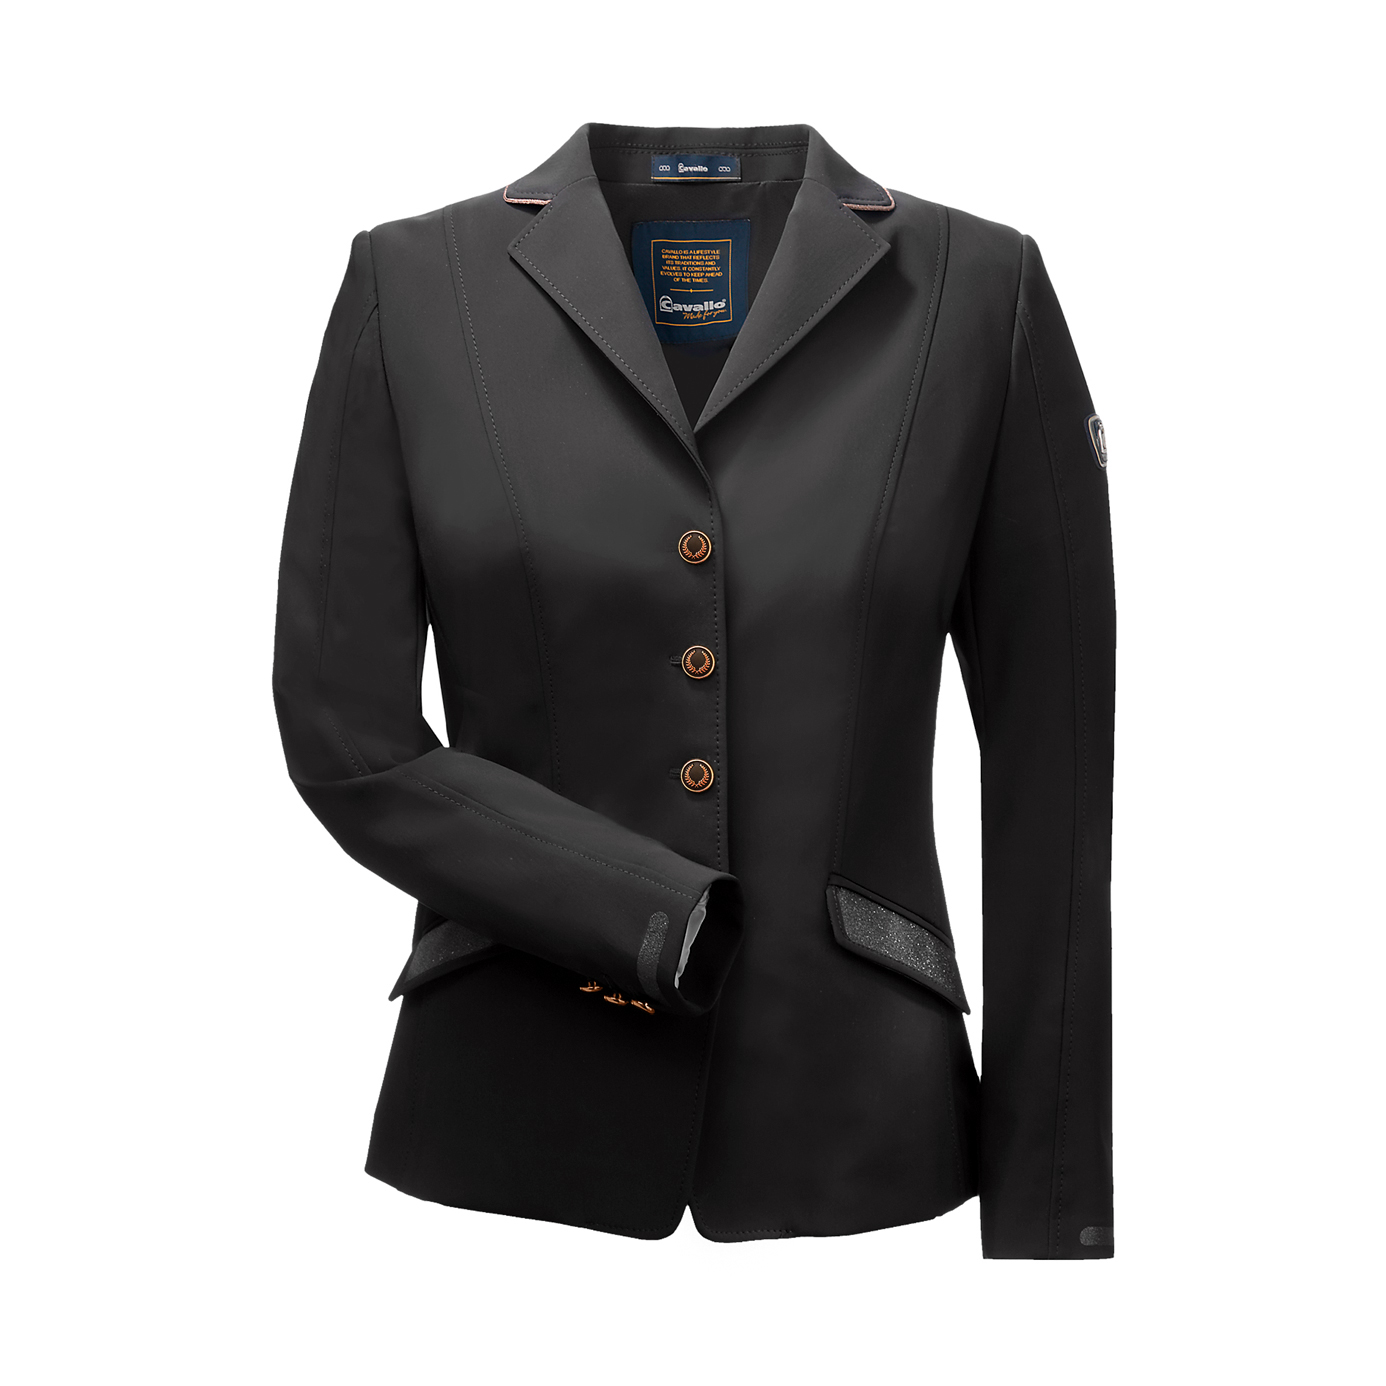 Cavallo Estoril Pro Bling Black Ladies Equestrian Show Jacket